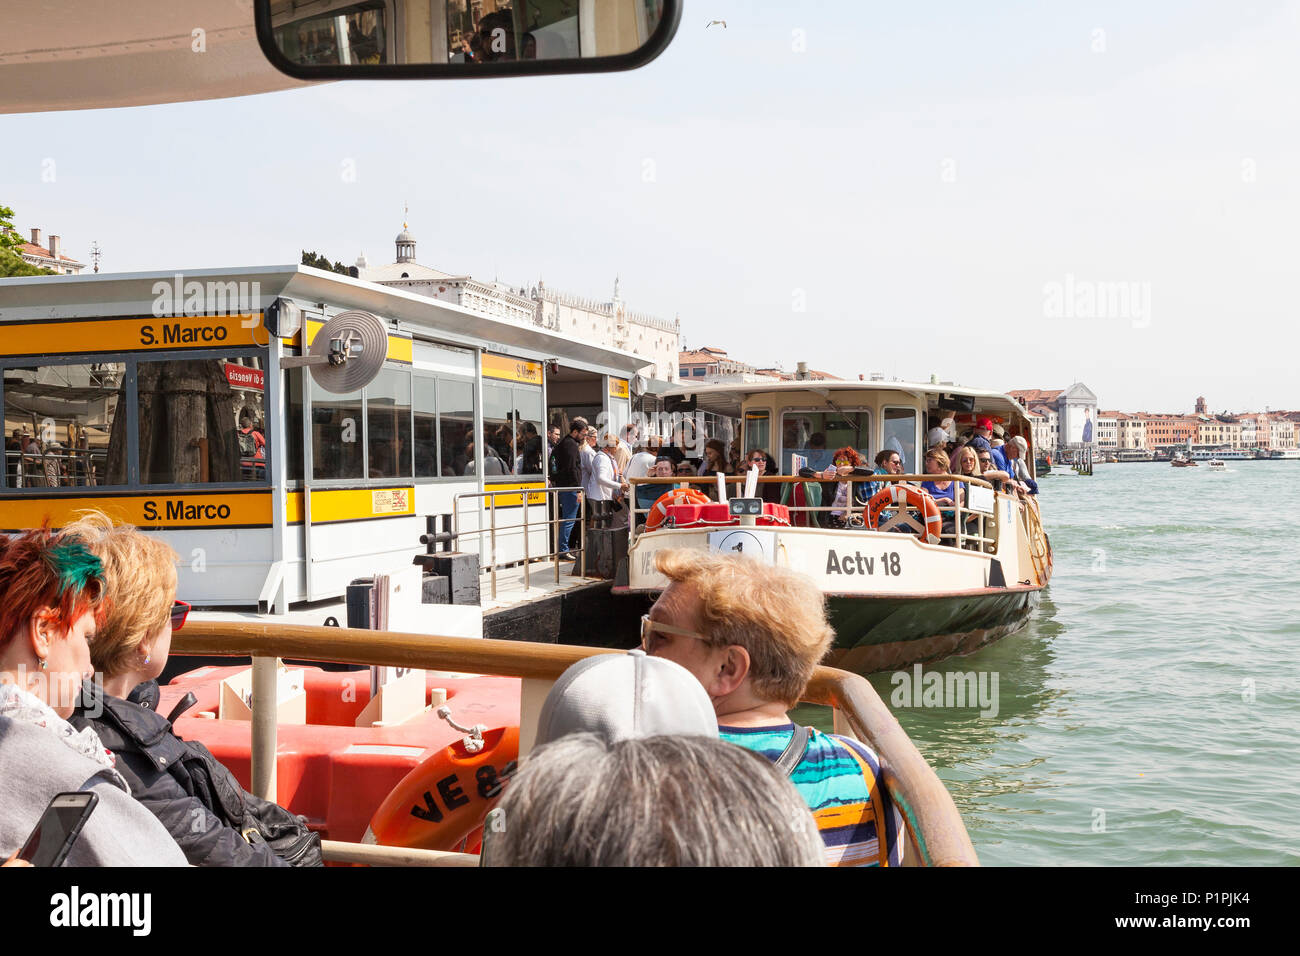 Travelling by overcrowded vaporetto waterbus in Venice, Veneto,  Italy with crowds of people boarding a boat at the San Marco stop in a first person P - Stock Image